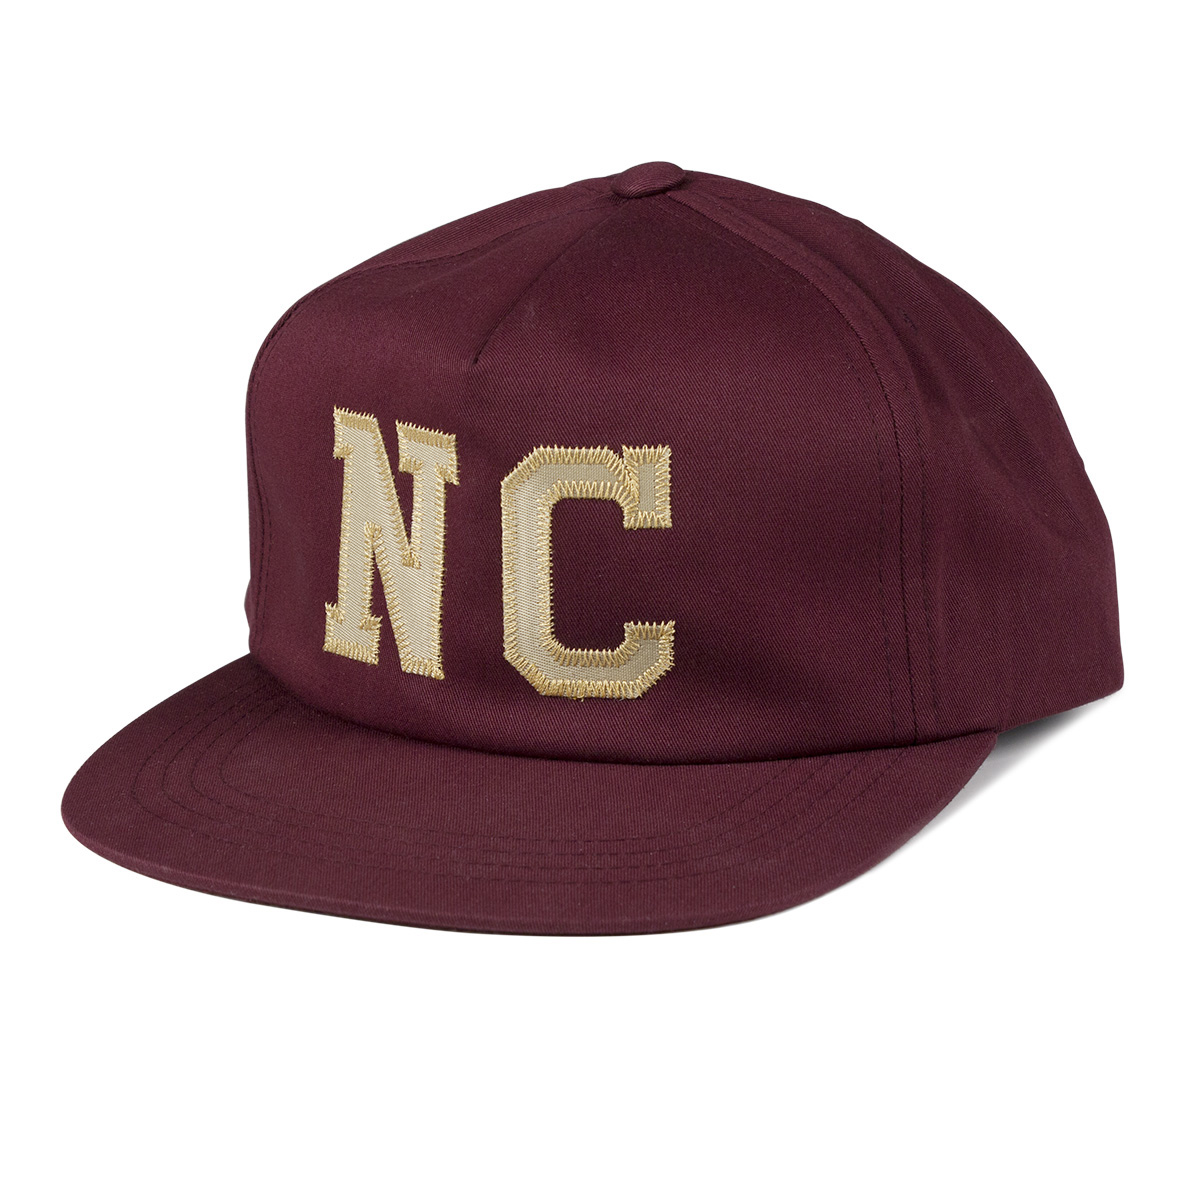 embroidery-NC-shorthand-hat.jpg